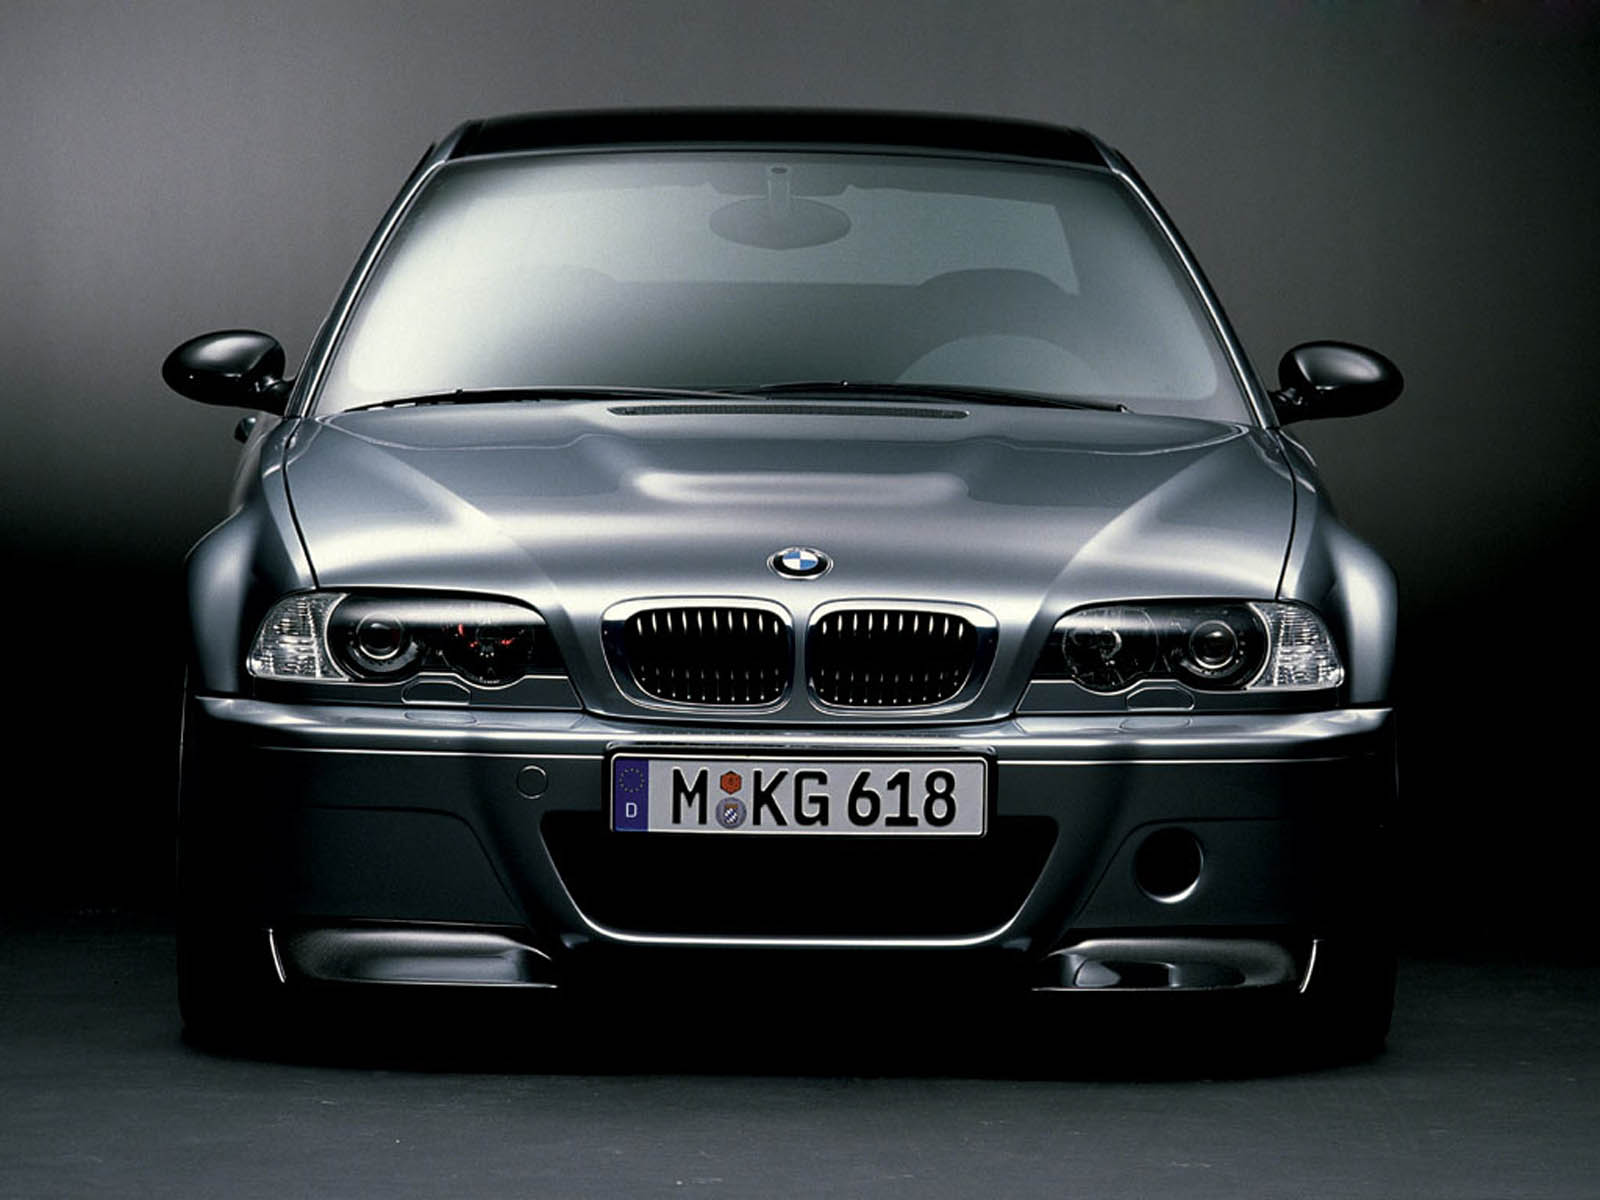 Tom And Jerry Wallpaper 3d Wallpapers Bmw M3 E46 Csl Car Wallpapers